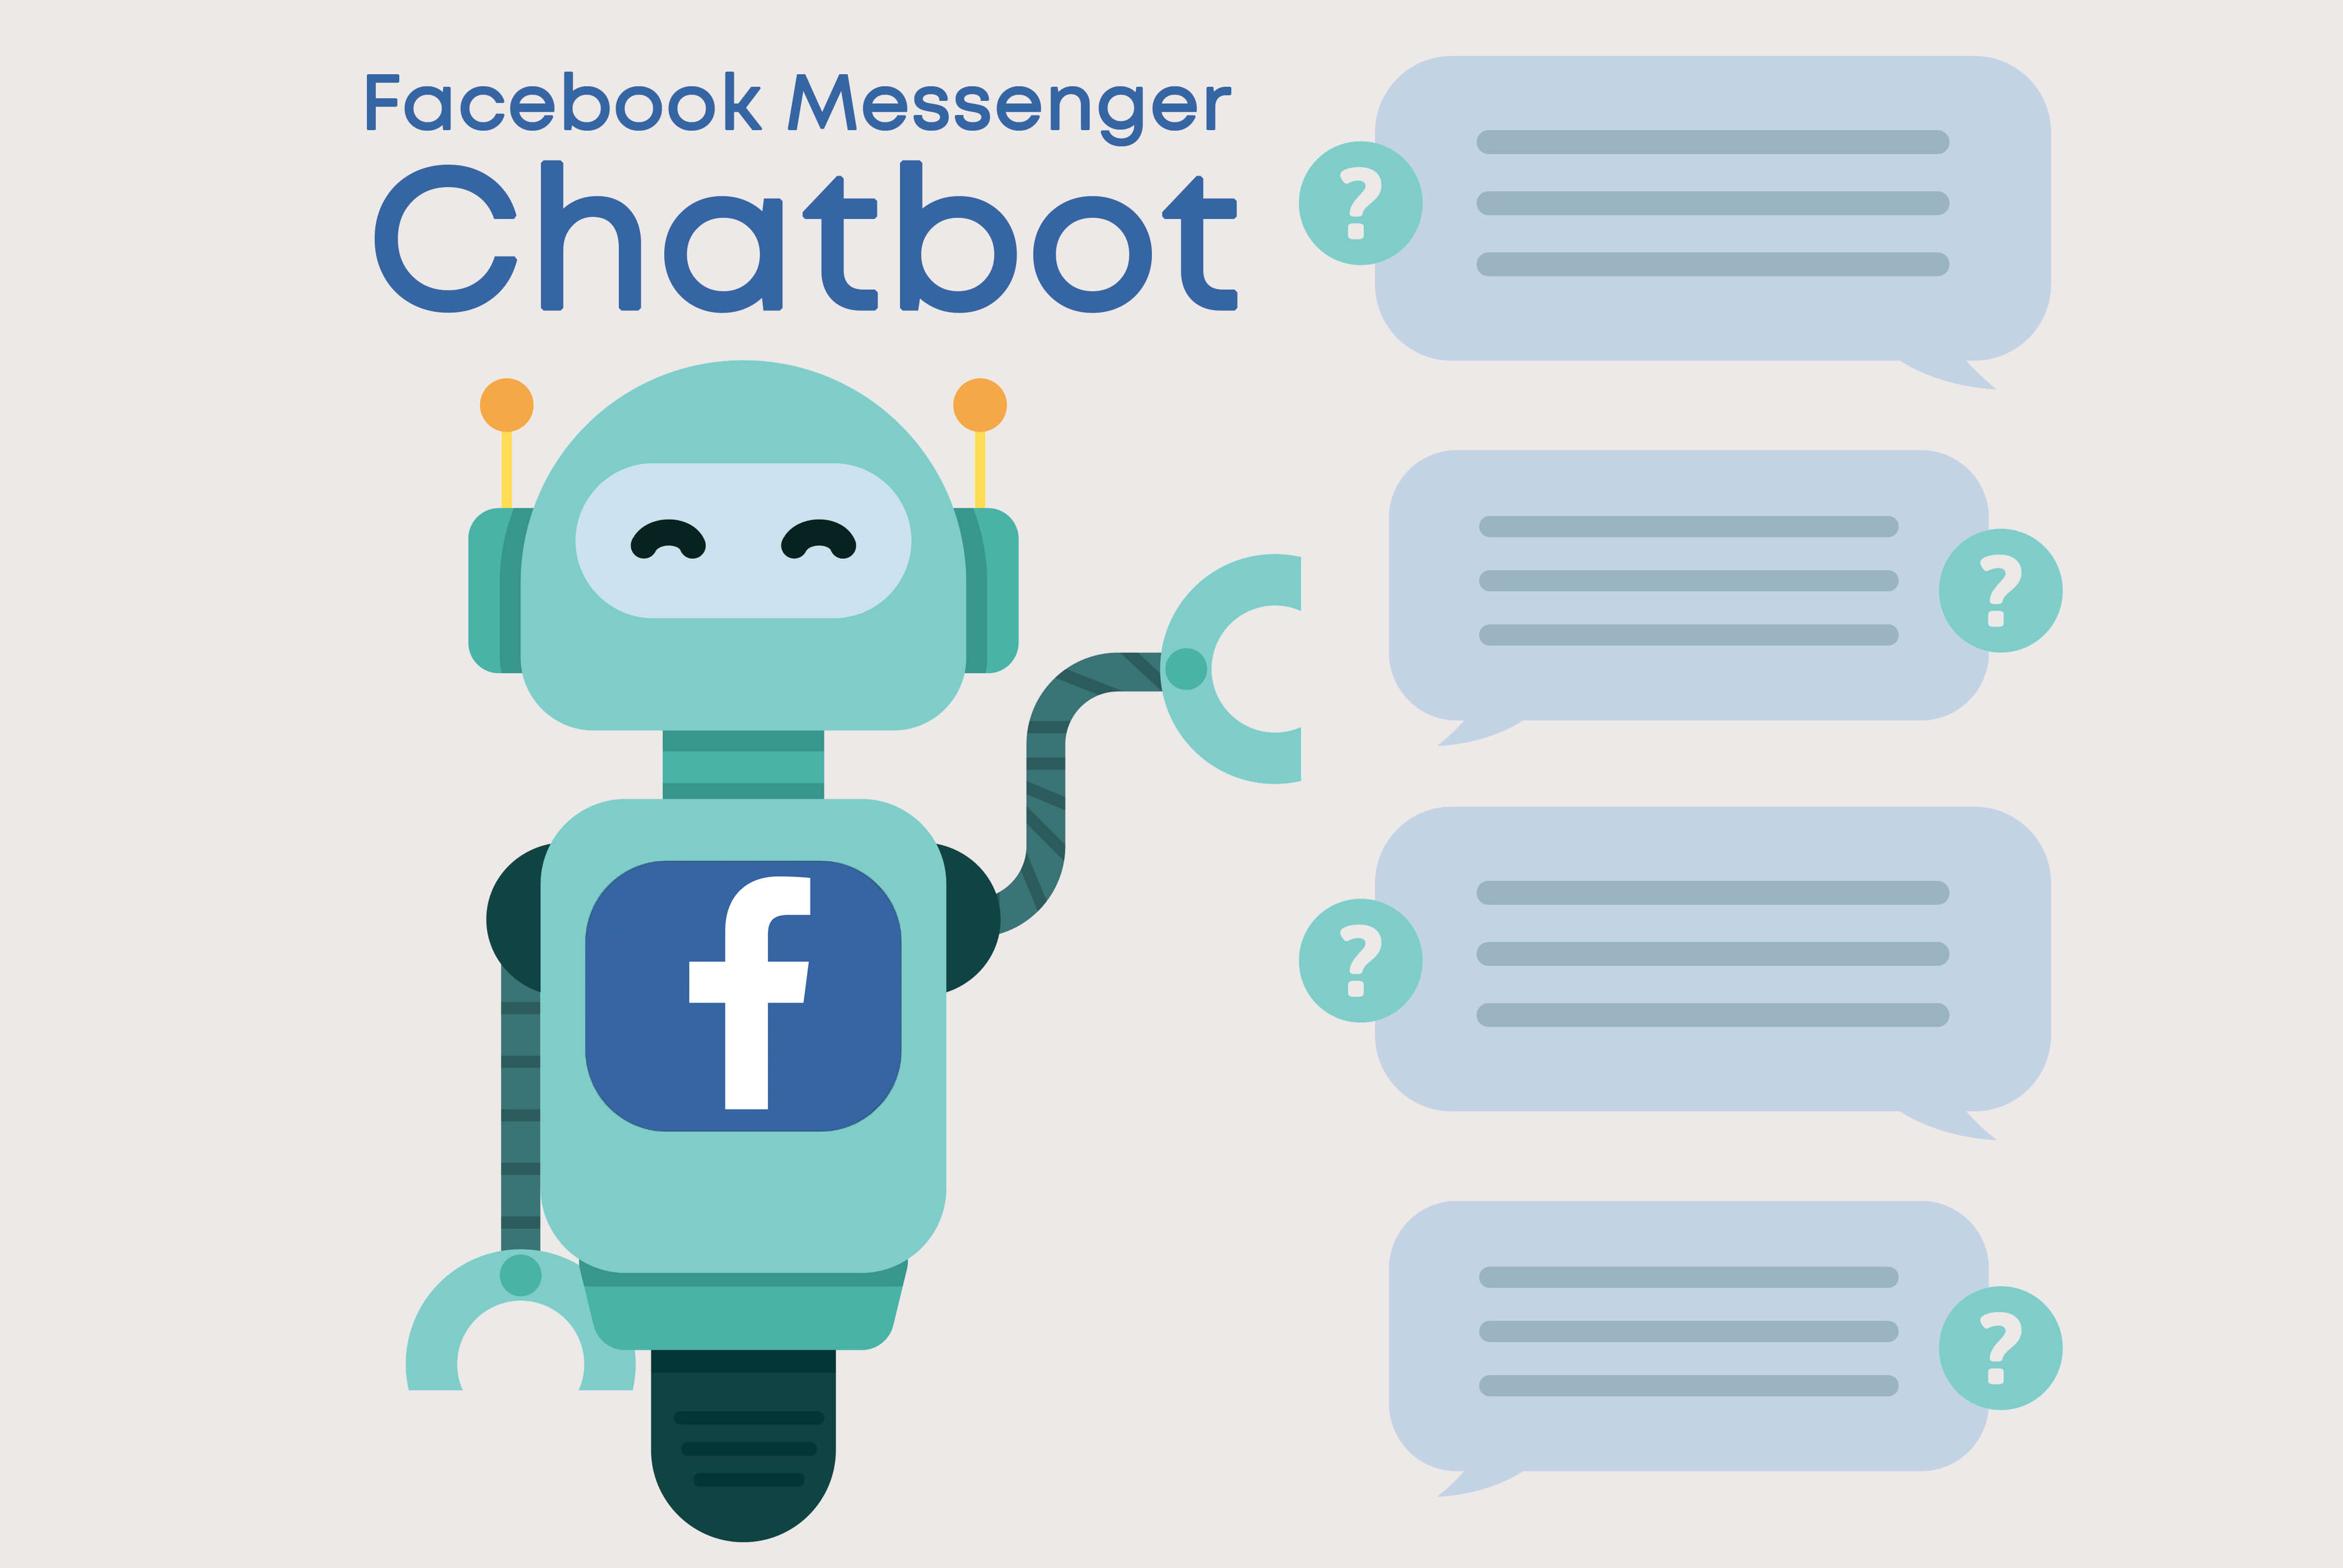 Reasons Your Business Needs a Facebook Messenger Chatbot